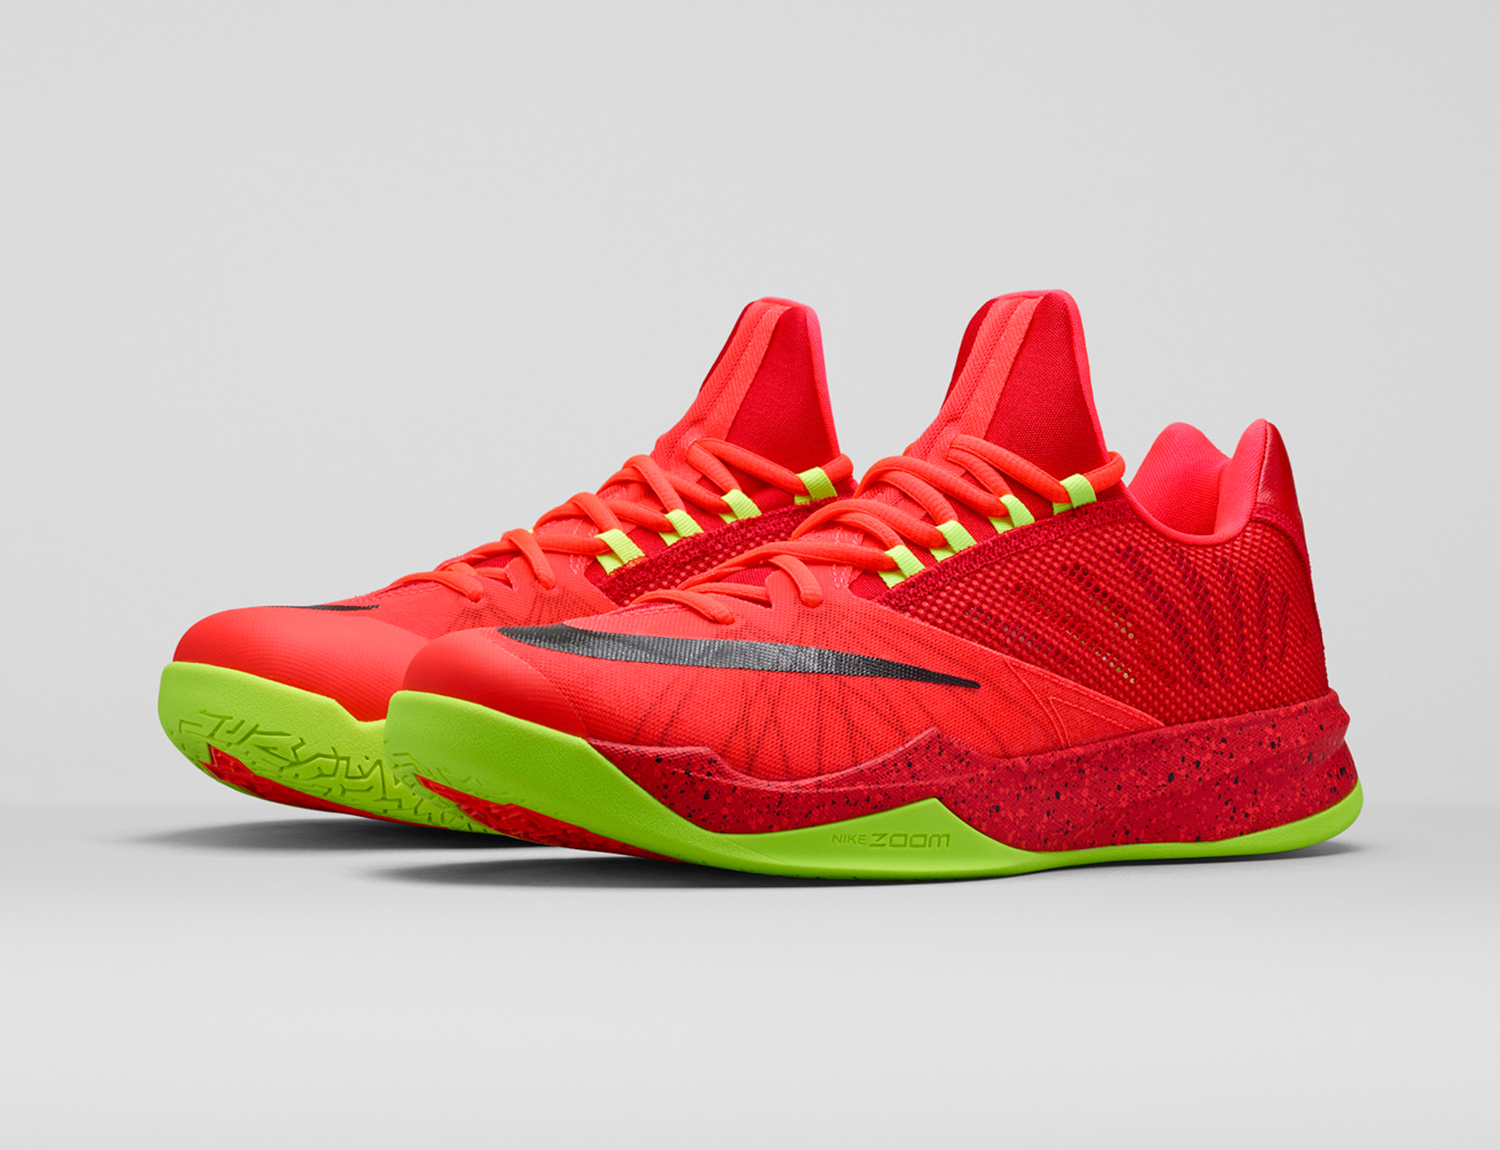 Nike Basketball Zoom Run The One 4